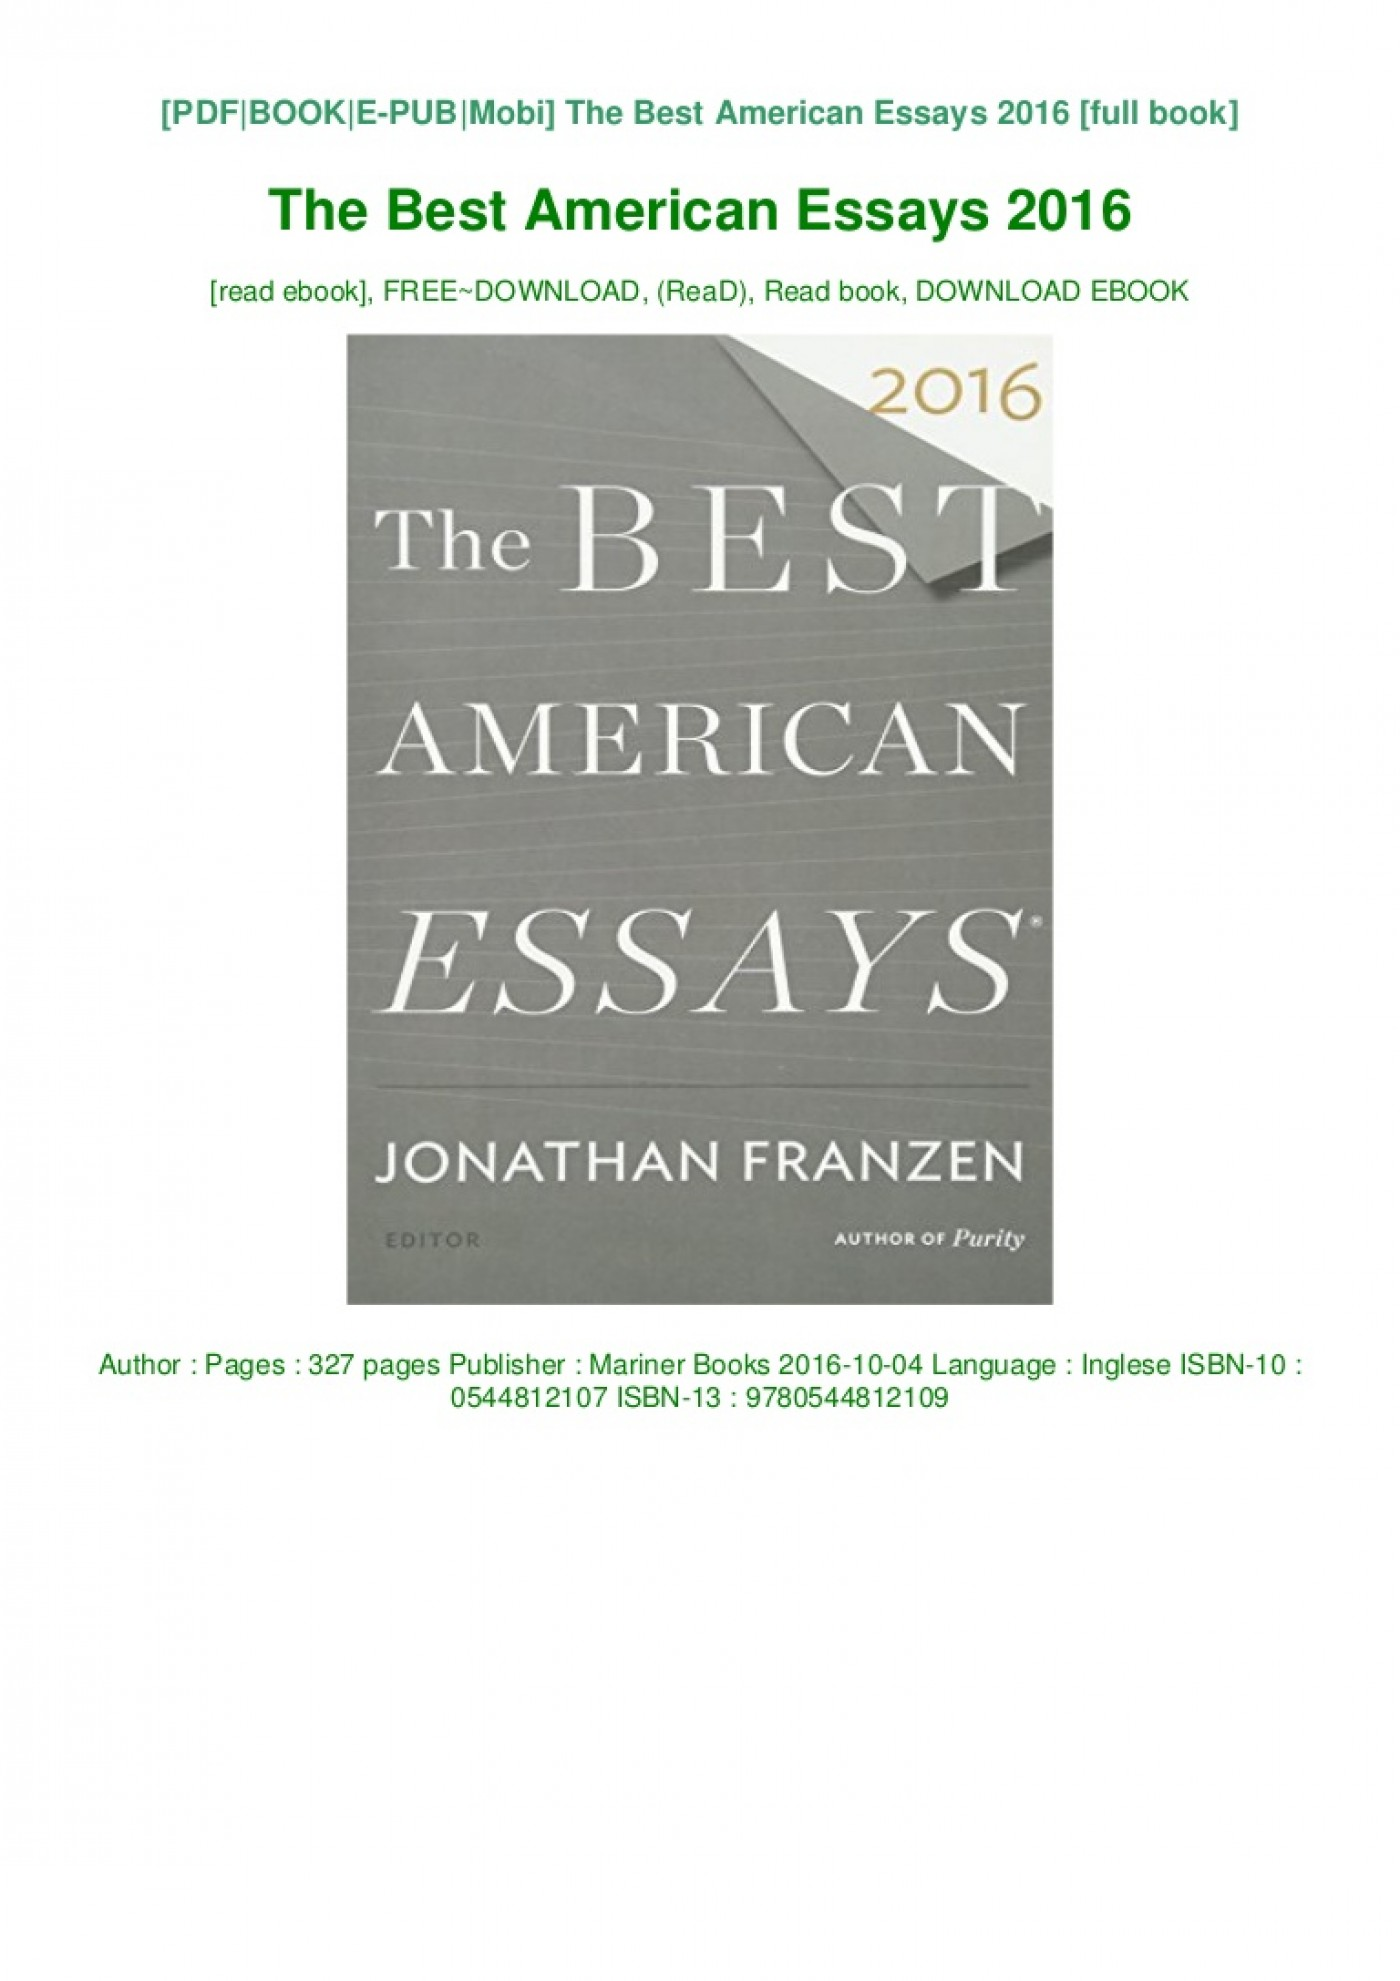 014 The Best American Essays Essay Example Download Pdf Epub Audiobook Ebook Thumbnail Wonderful 2018 2017 Table Of Contents 2015 Free 1400